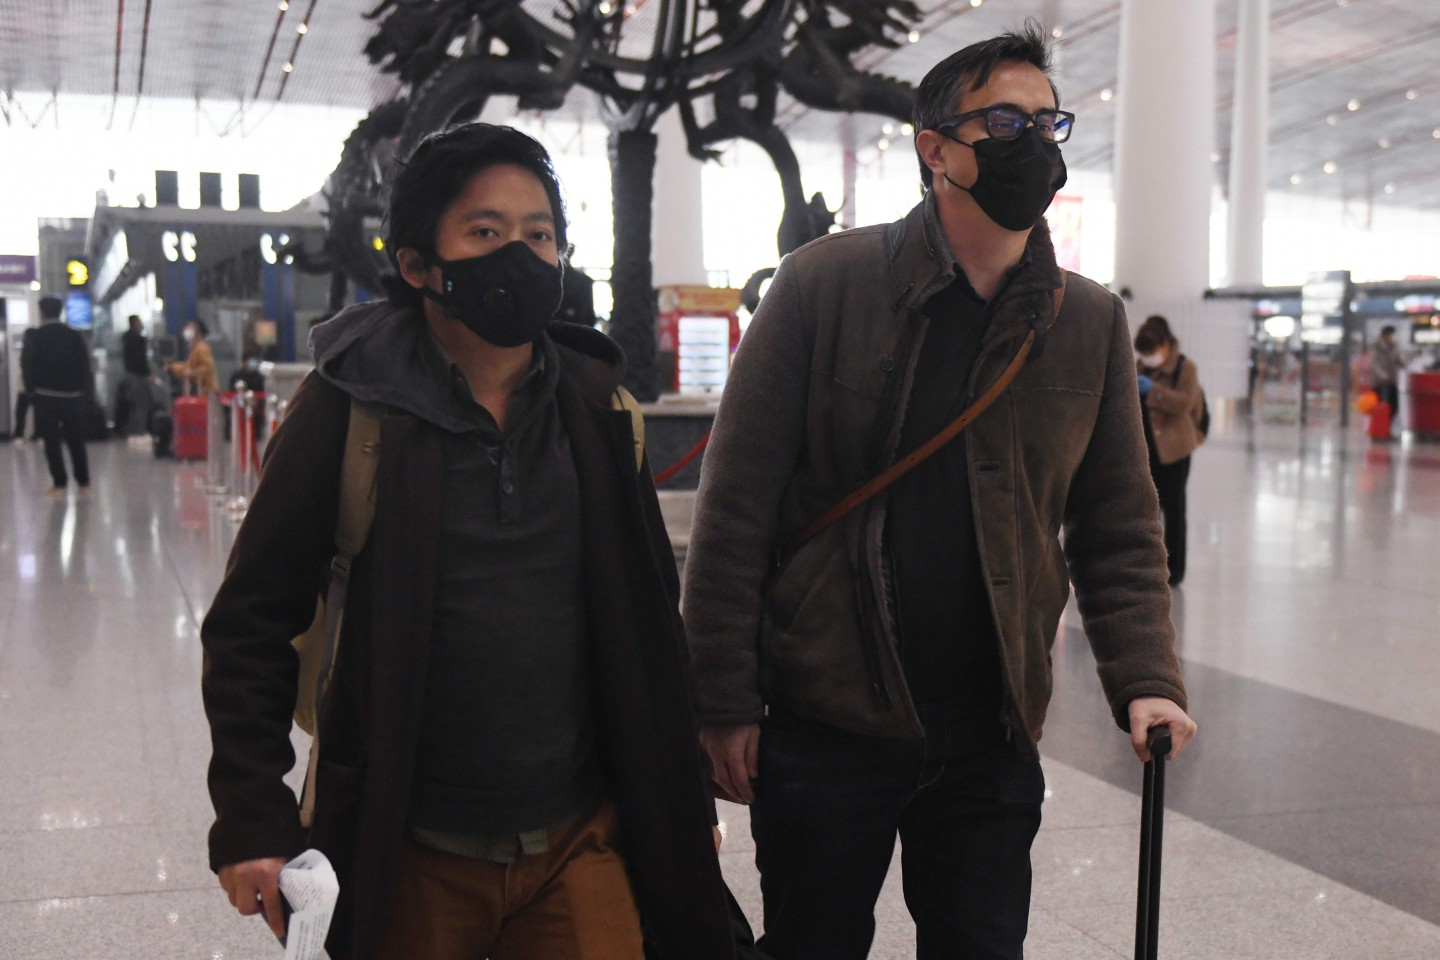 Wall Street Journal reporters Josh Chin (right) and Philip Wen walk through Beijing Capital Airport before their departure on 24 February 2020. (Greg Baker/AFP)